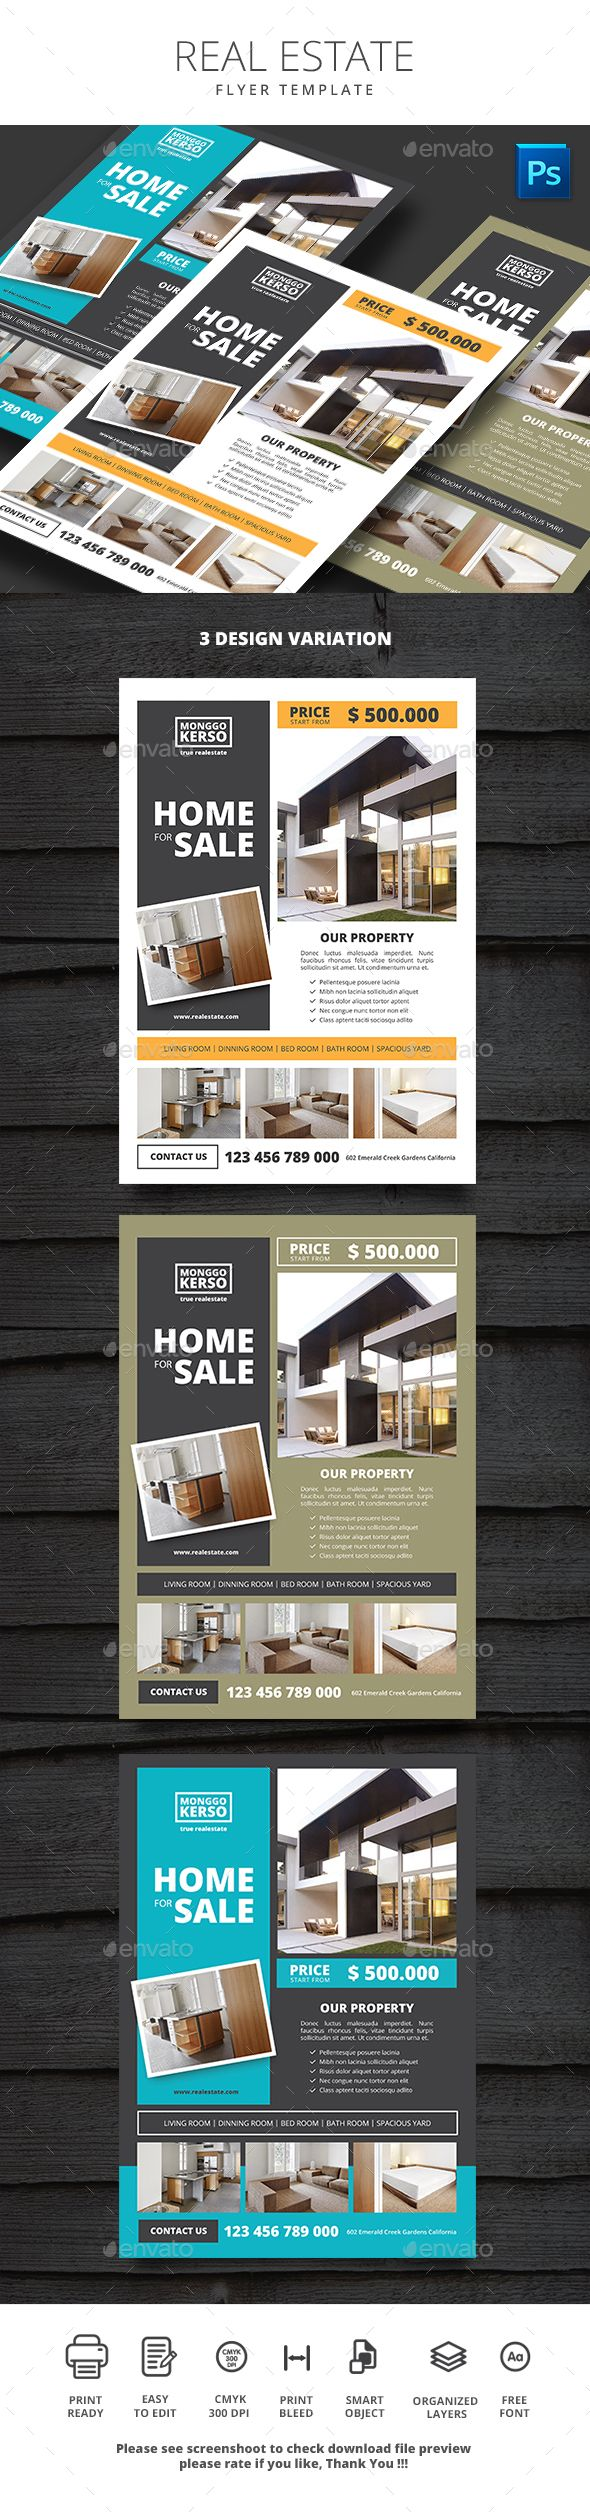 best ideas about real estate flyers real estate real estate flyer template commerce flyers design